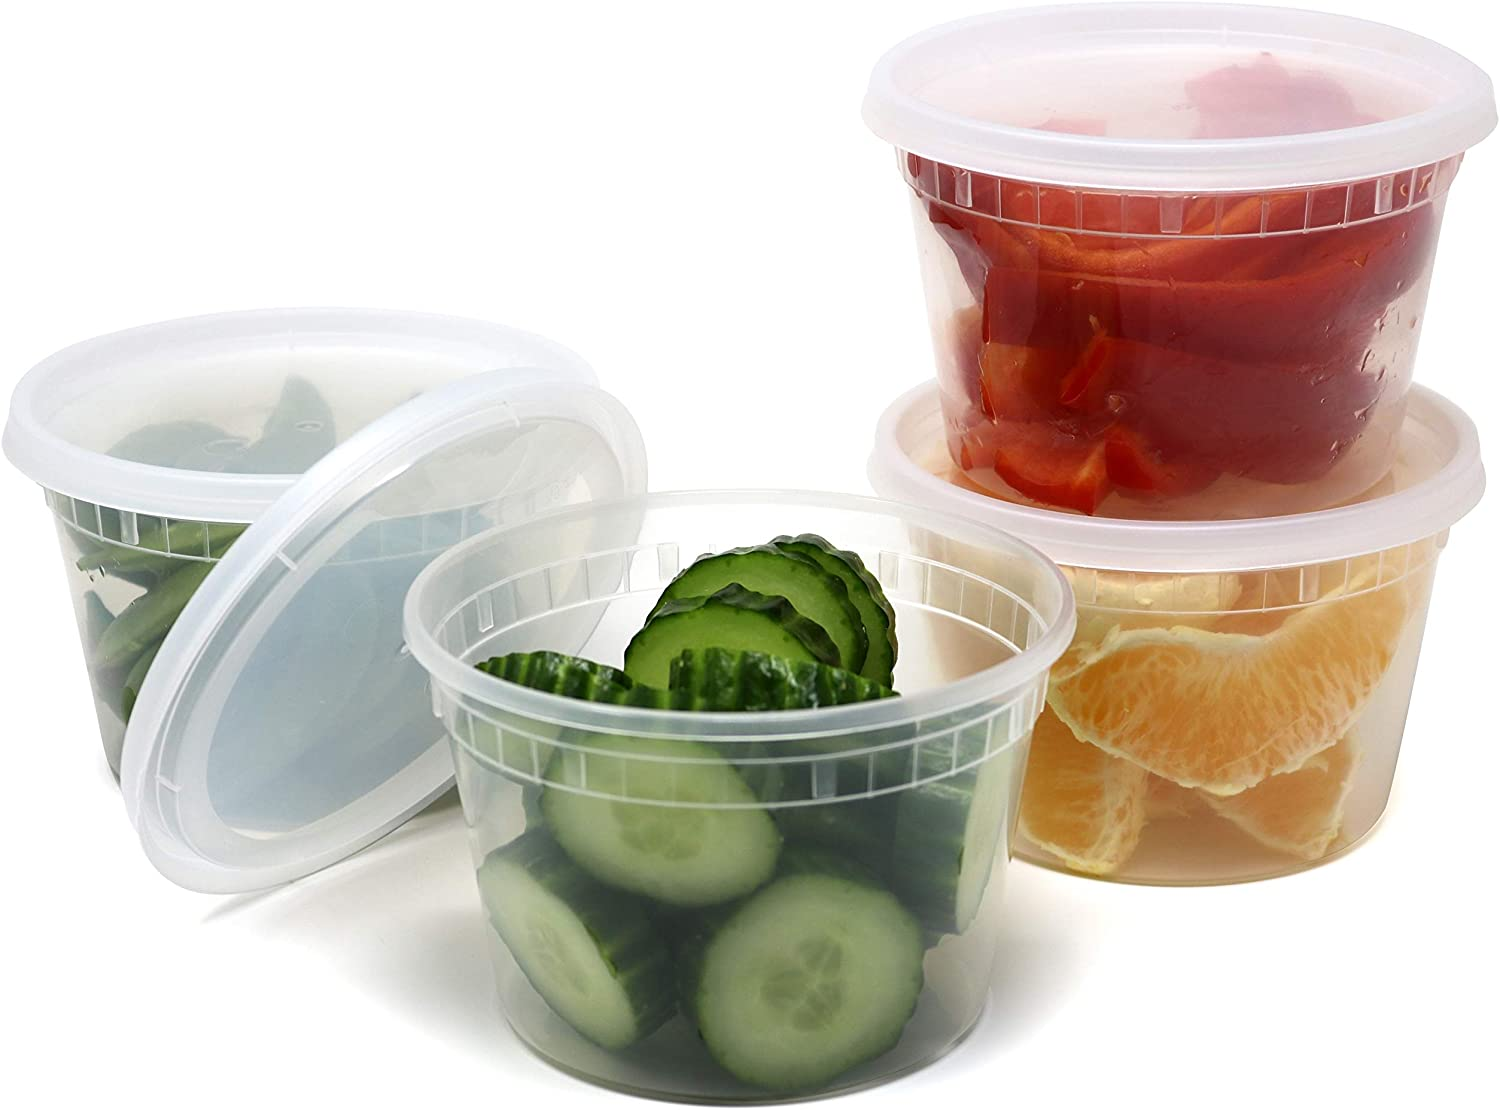 Plastic Food Storage Containers with Airtight Lids 16 oz. - BPA Free, Restaurant Deli Cups, Foodsavers, Portion Control, and Meal Prep Containers, 24 Pack